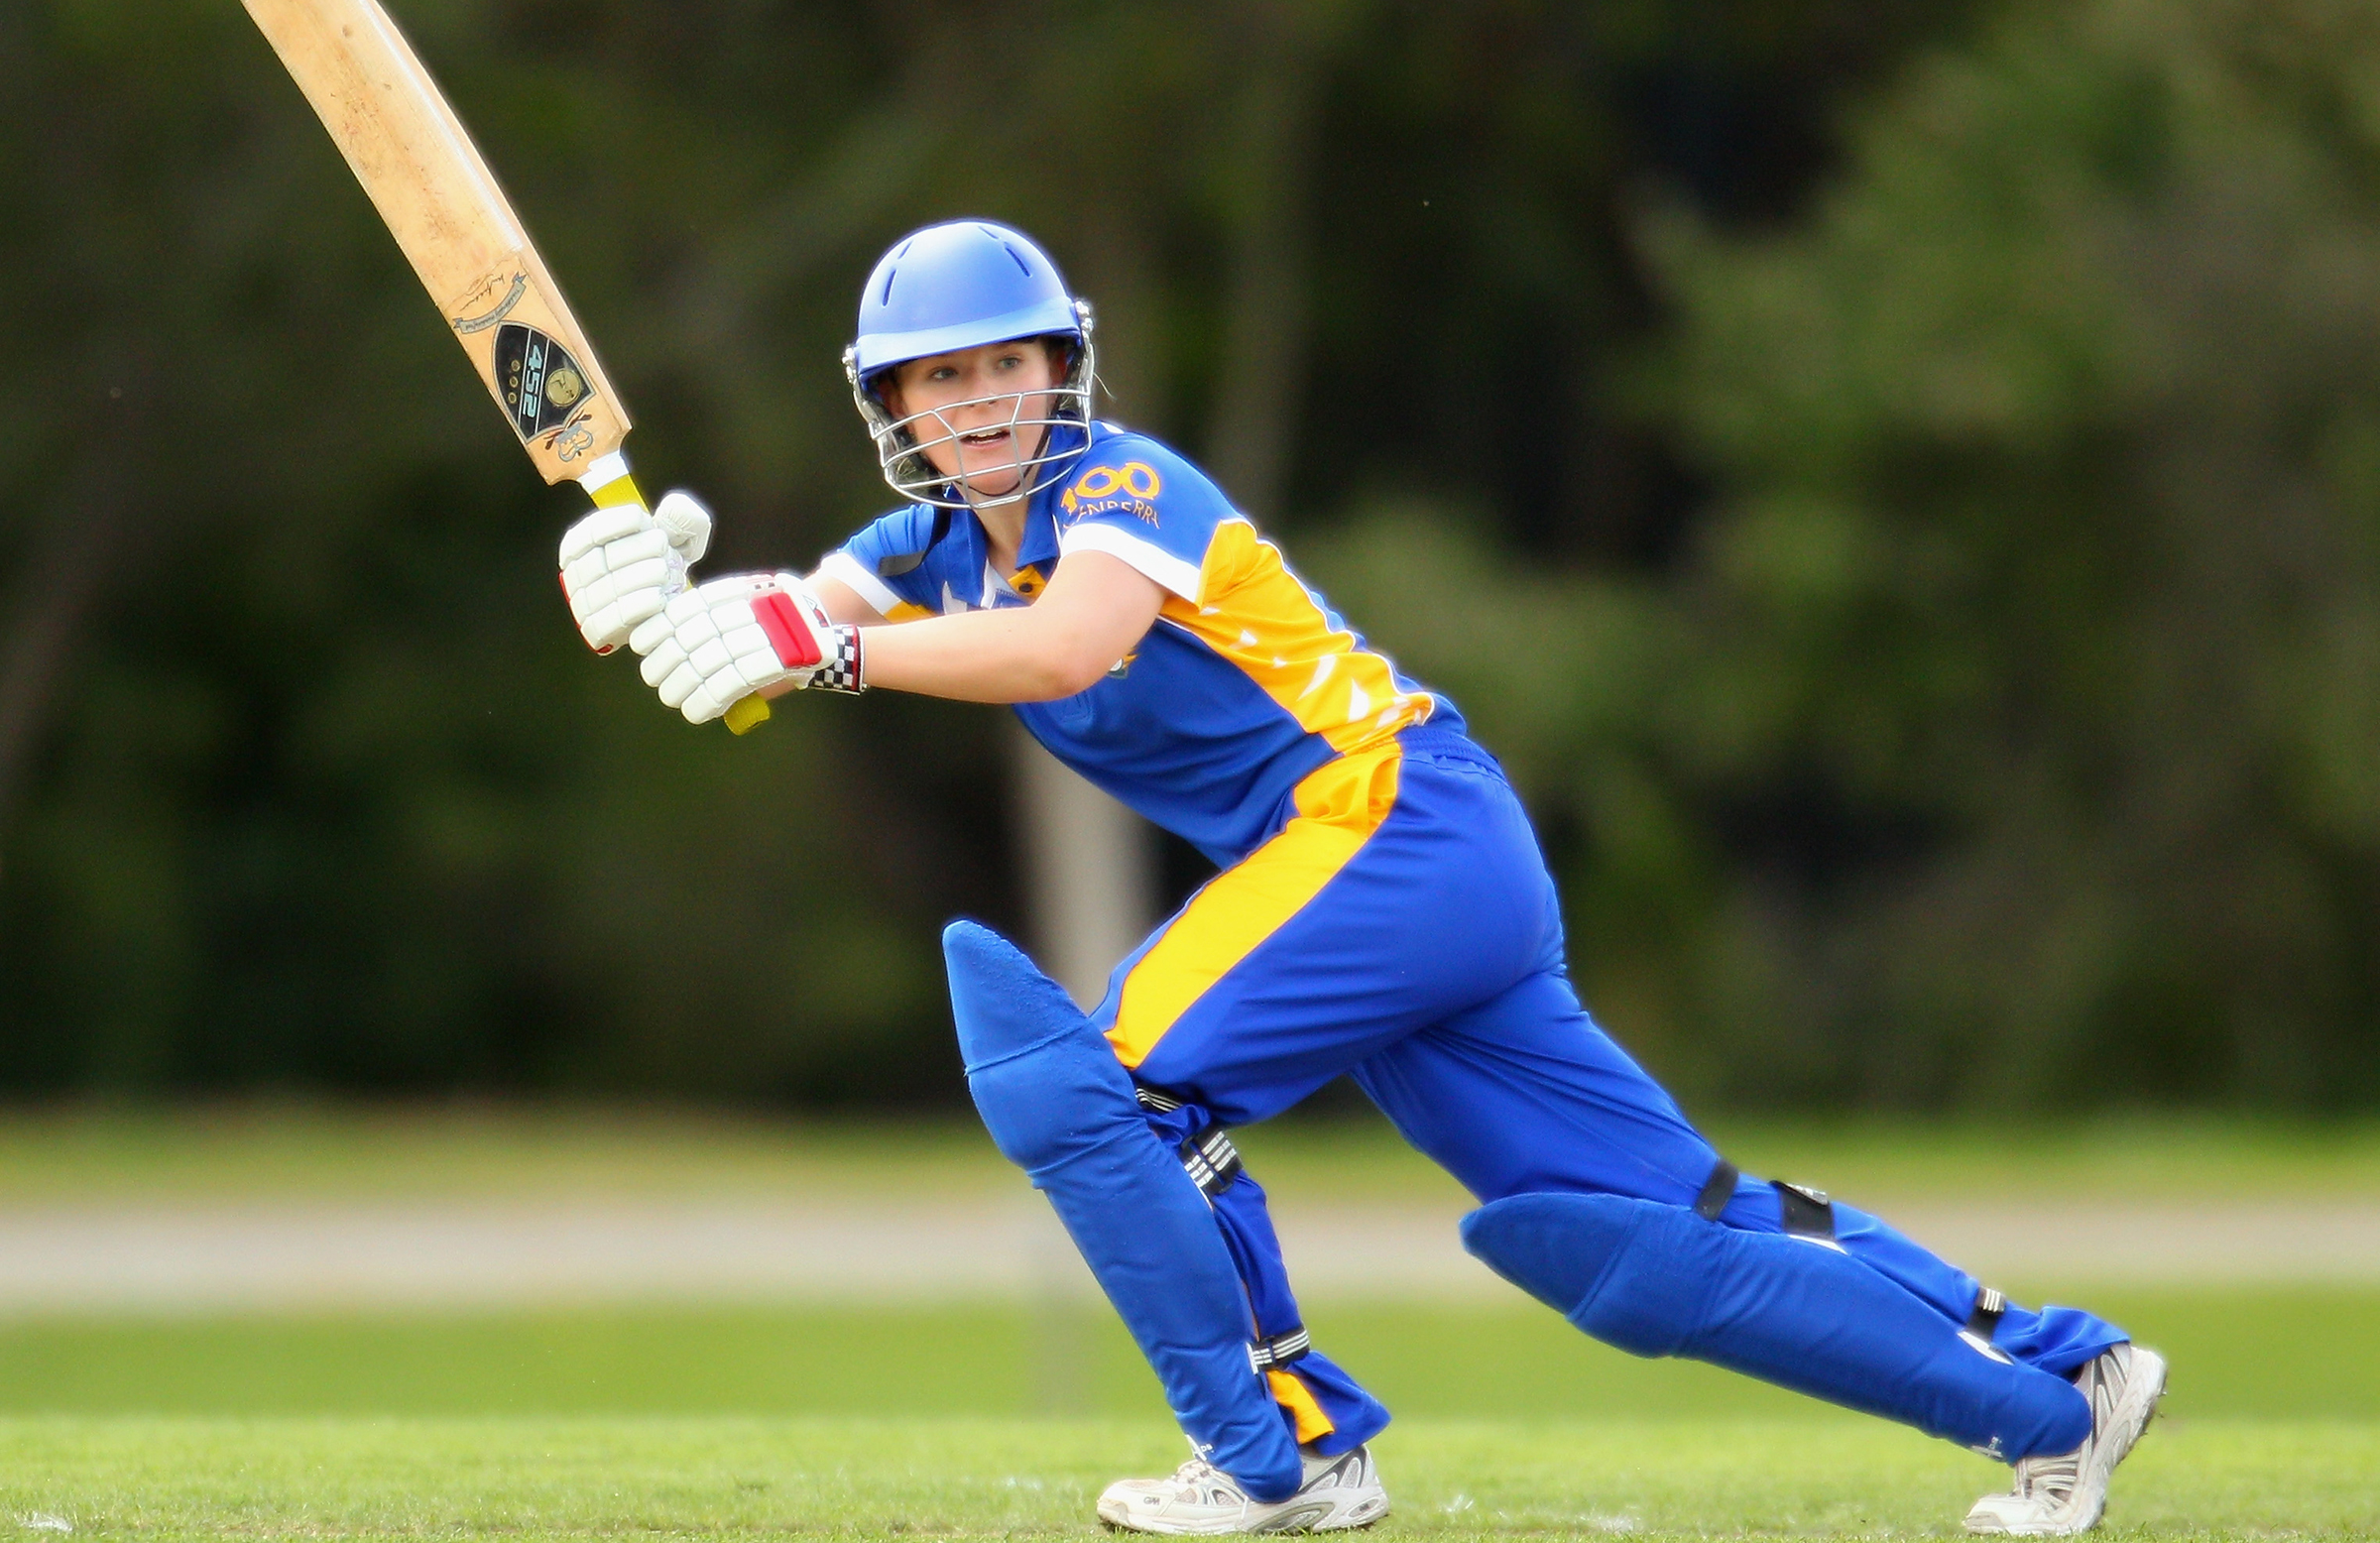 Mack typically opens for WNCL team ACT Meteors // Getty